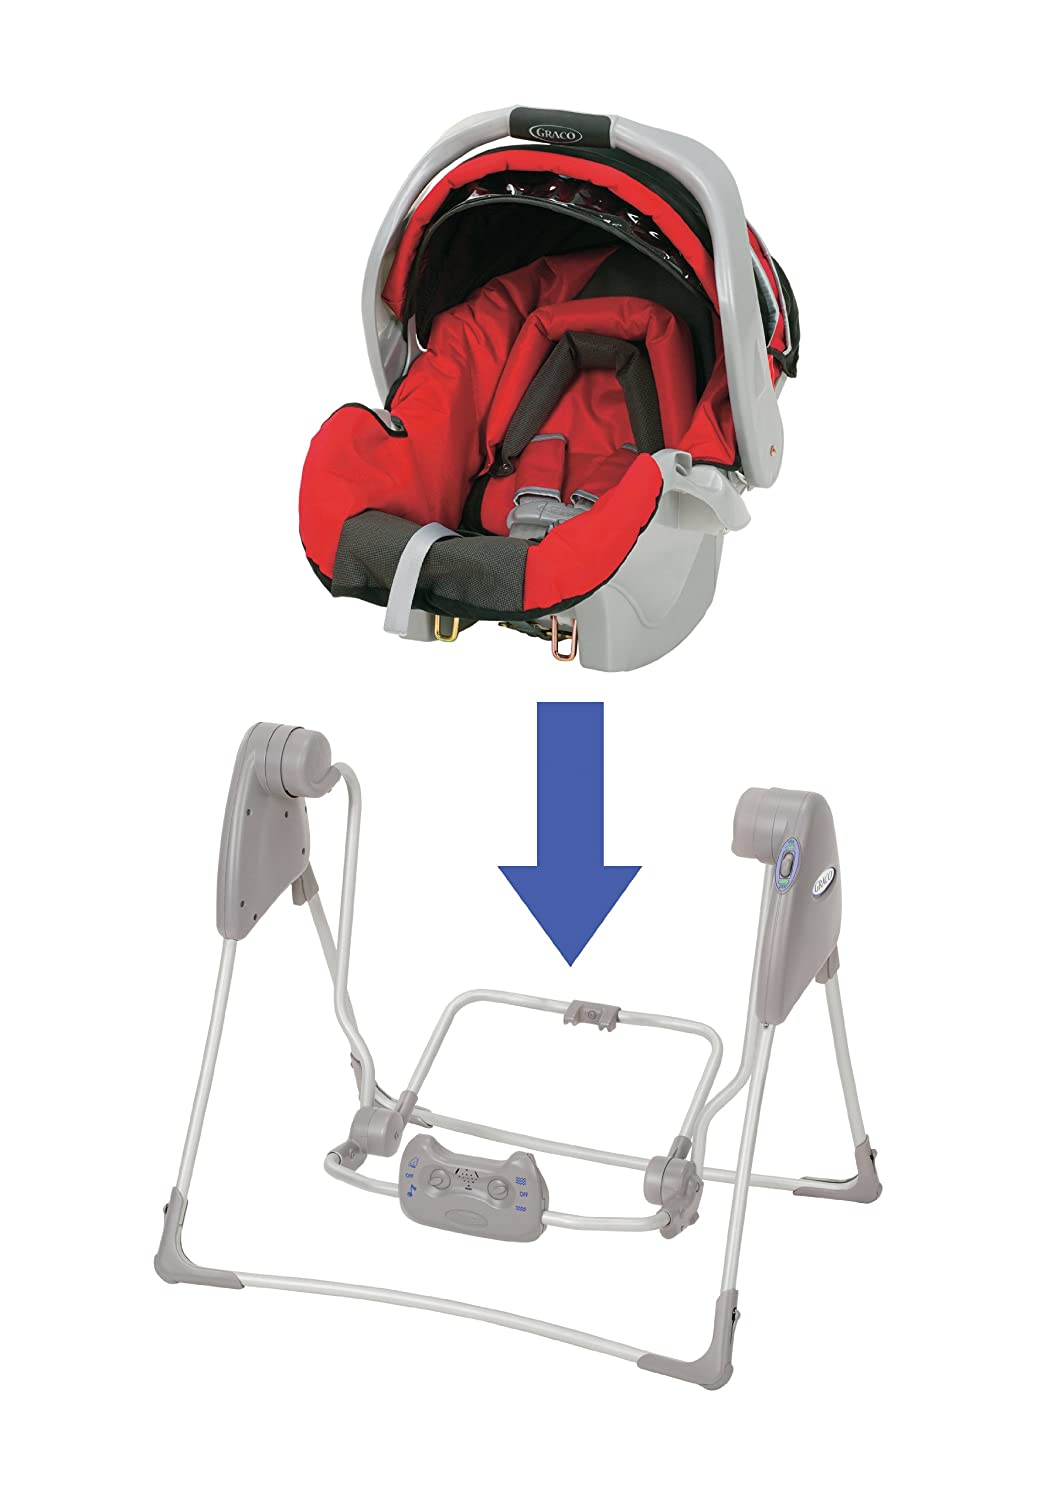 Graco Baby SnugGlider Infant Car Seat Swing Frame